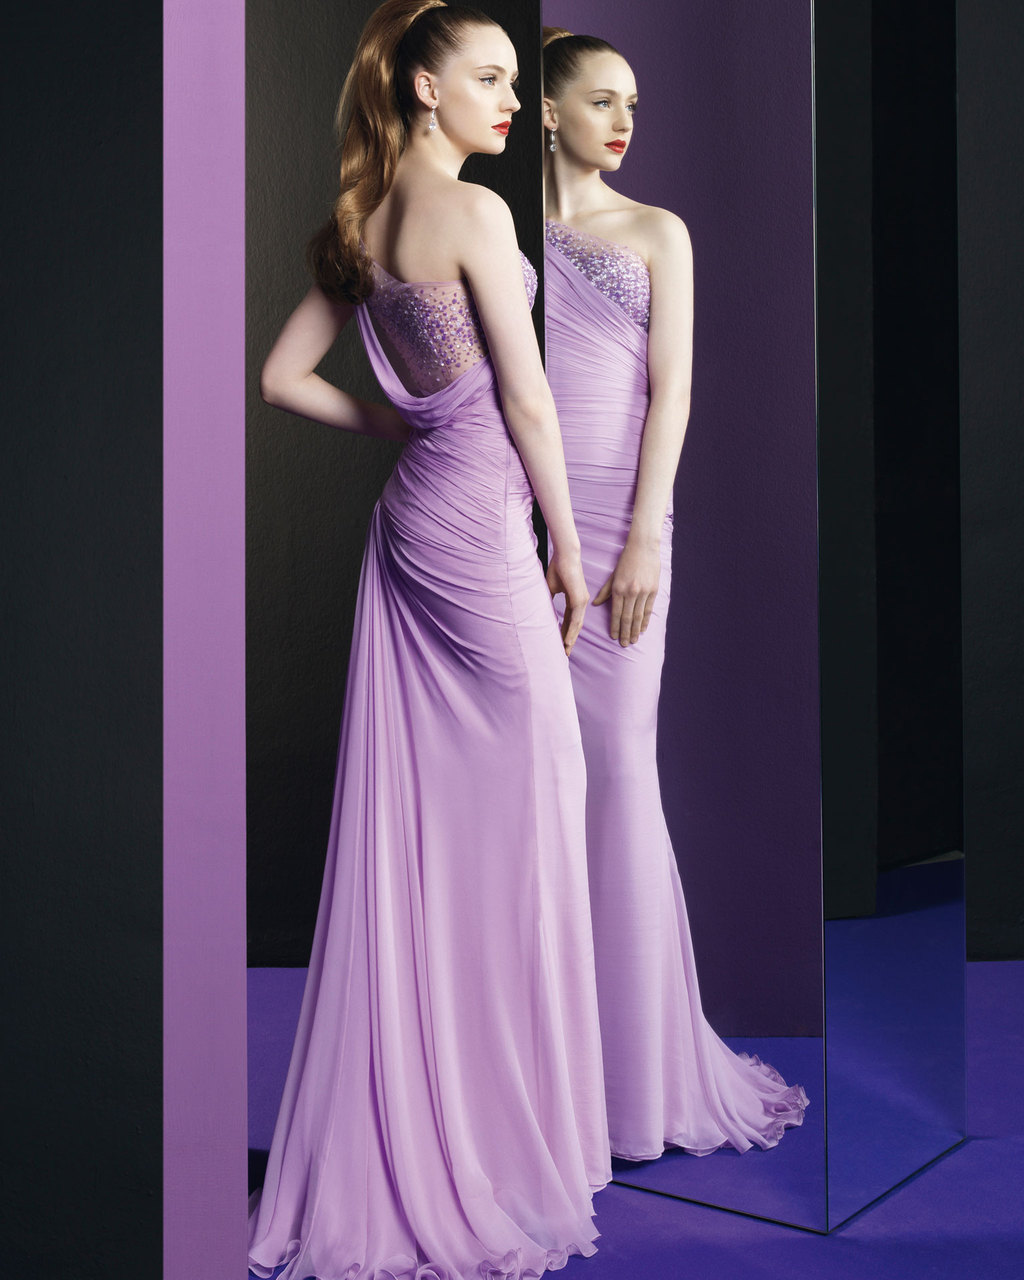 Gorgeous-gowns-for-bride-groom-mothers-mob-mog-by-zuhair-murad-for-rosa-clara.full